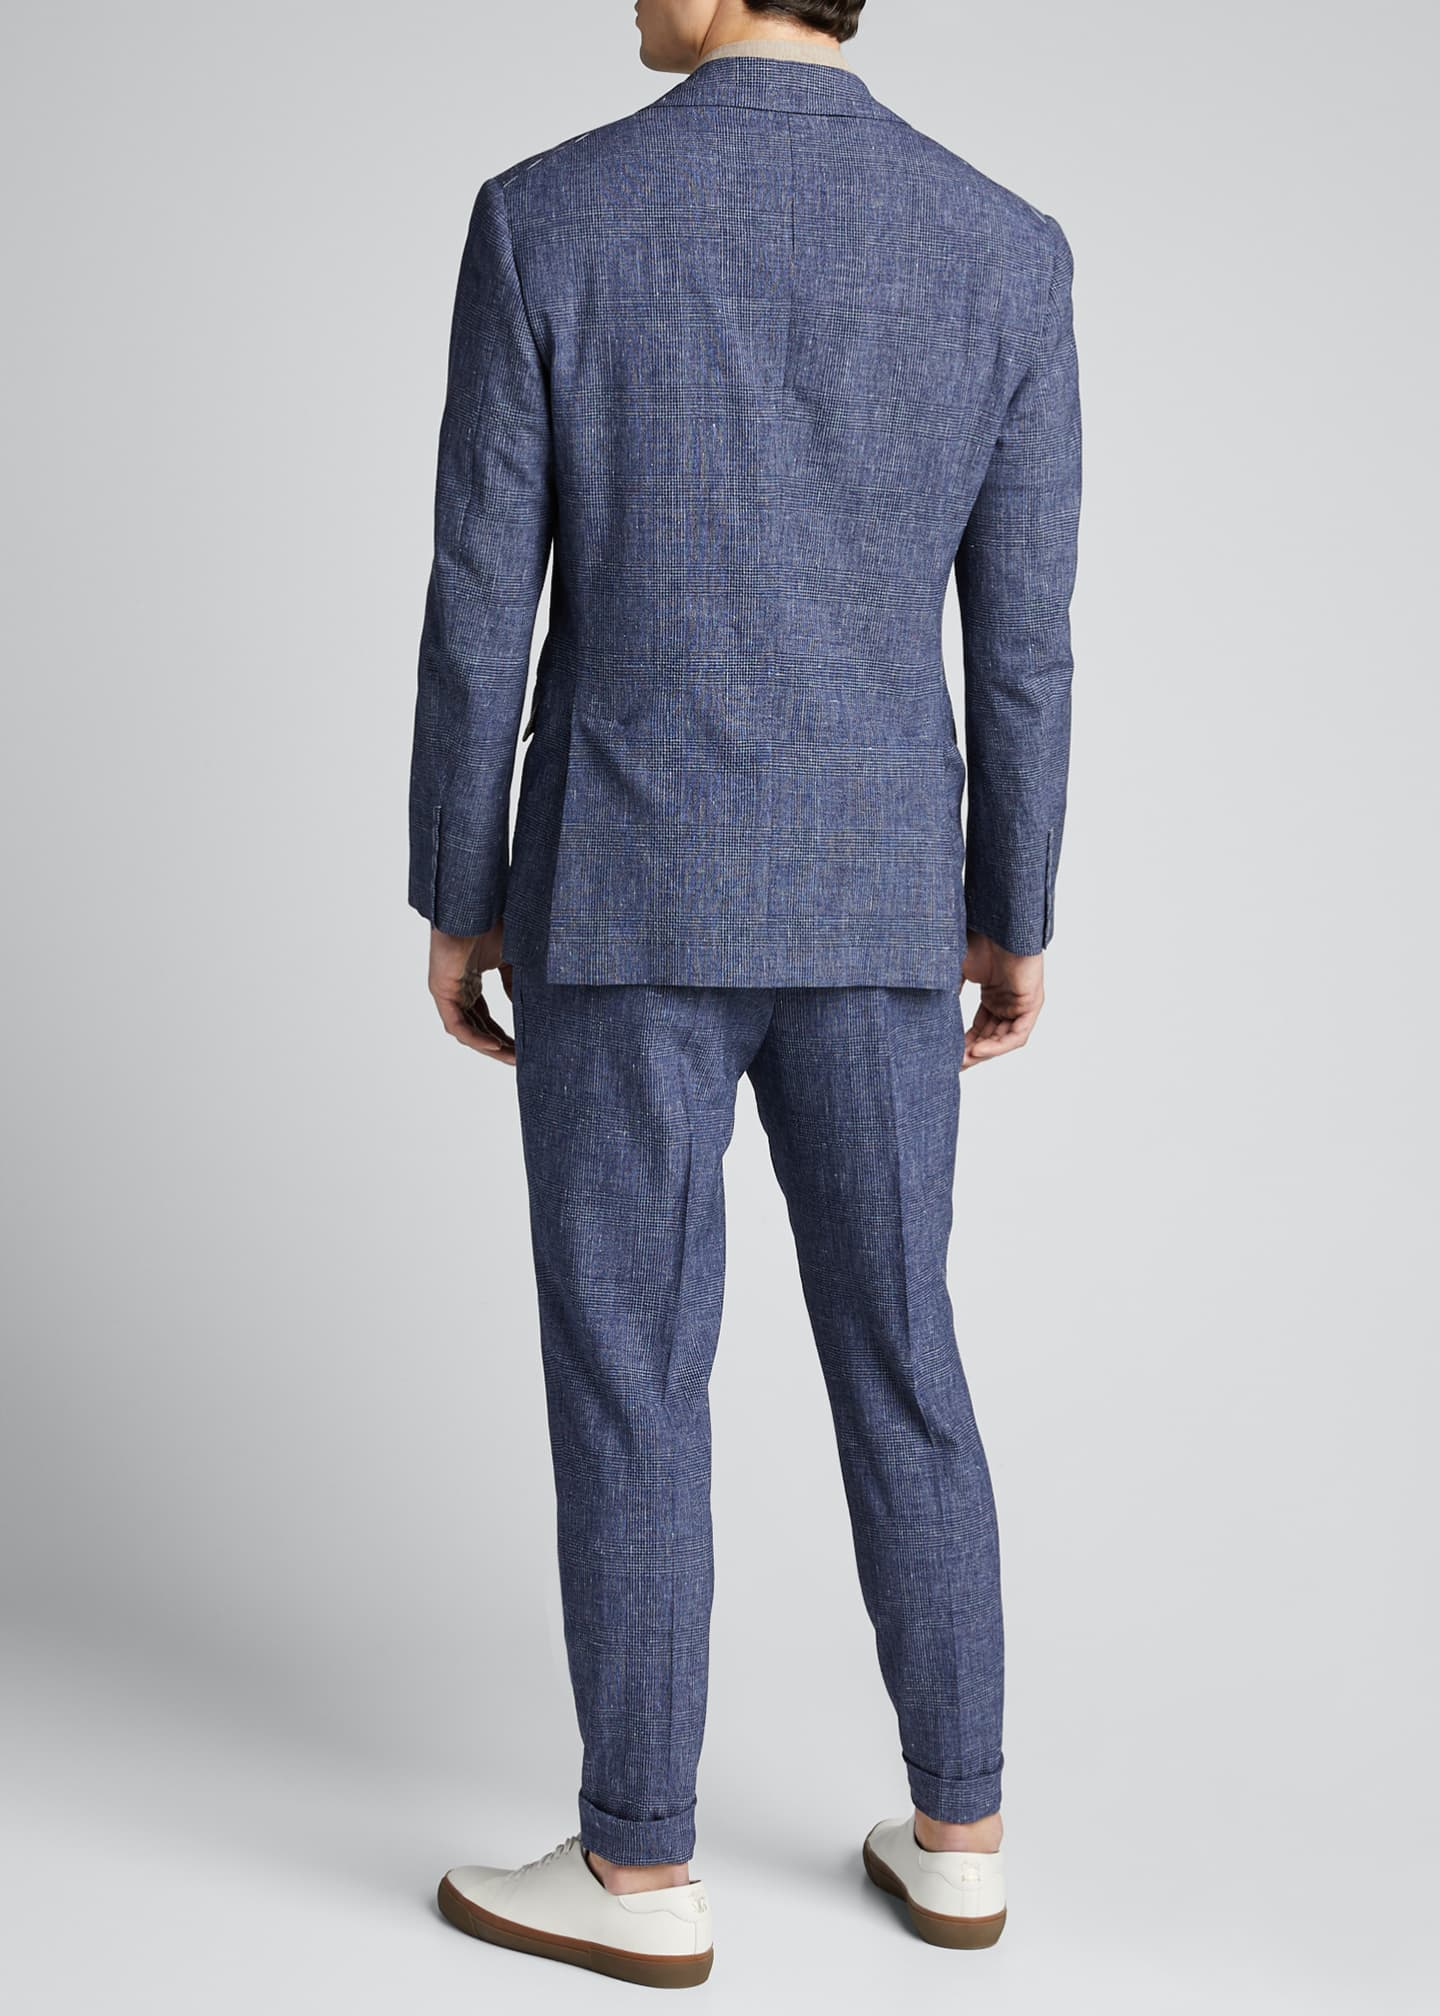 Image 2 of 5: Men's Glen Plaid Peak Lapel Two-Piece Suit